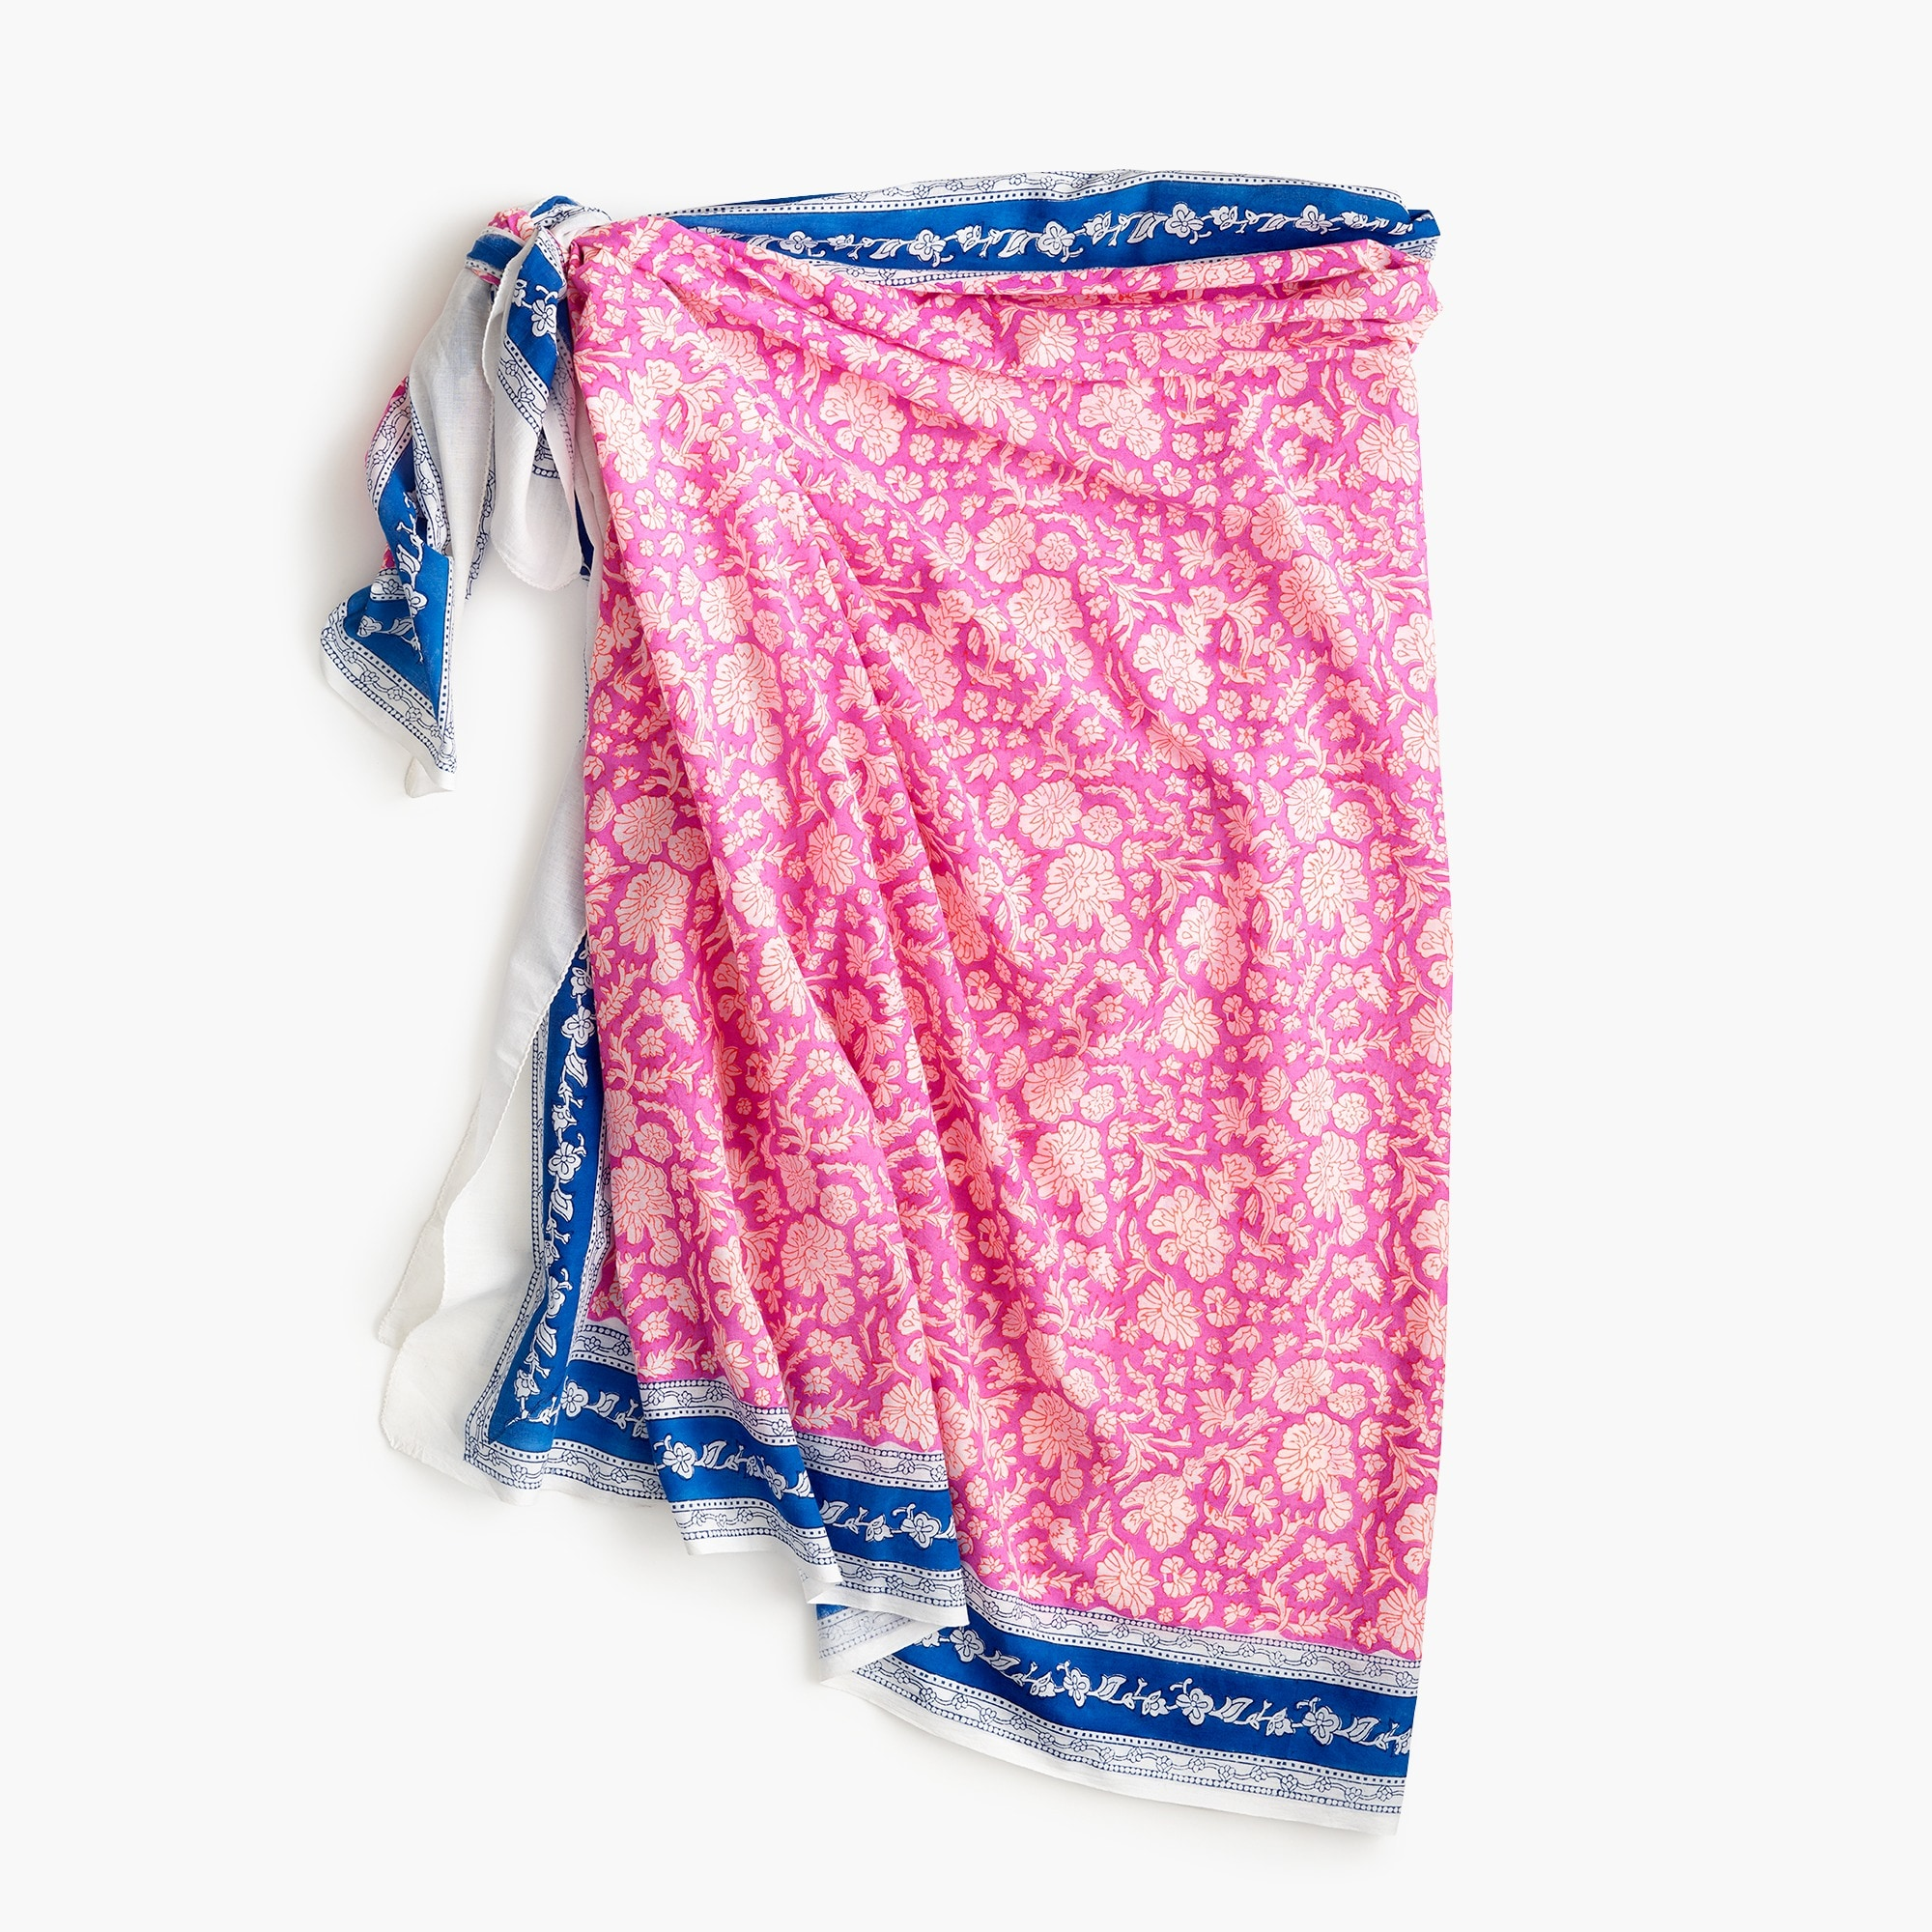 SZ Blockprints™ for J.Crew sarong-scarf women j.crew in good company c